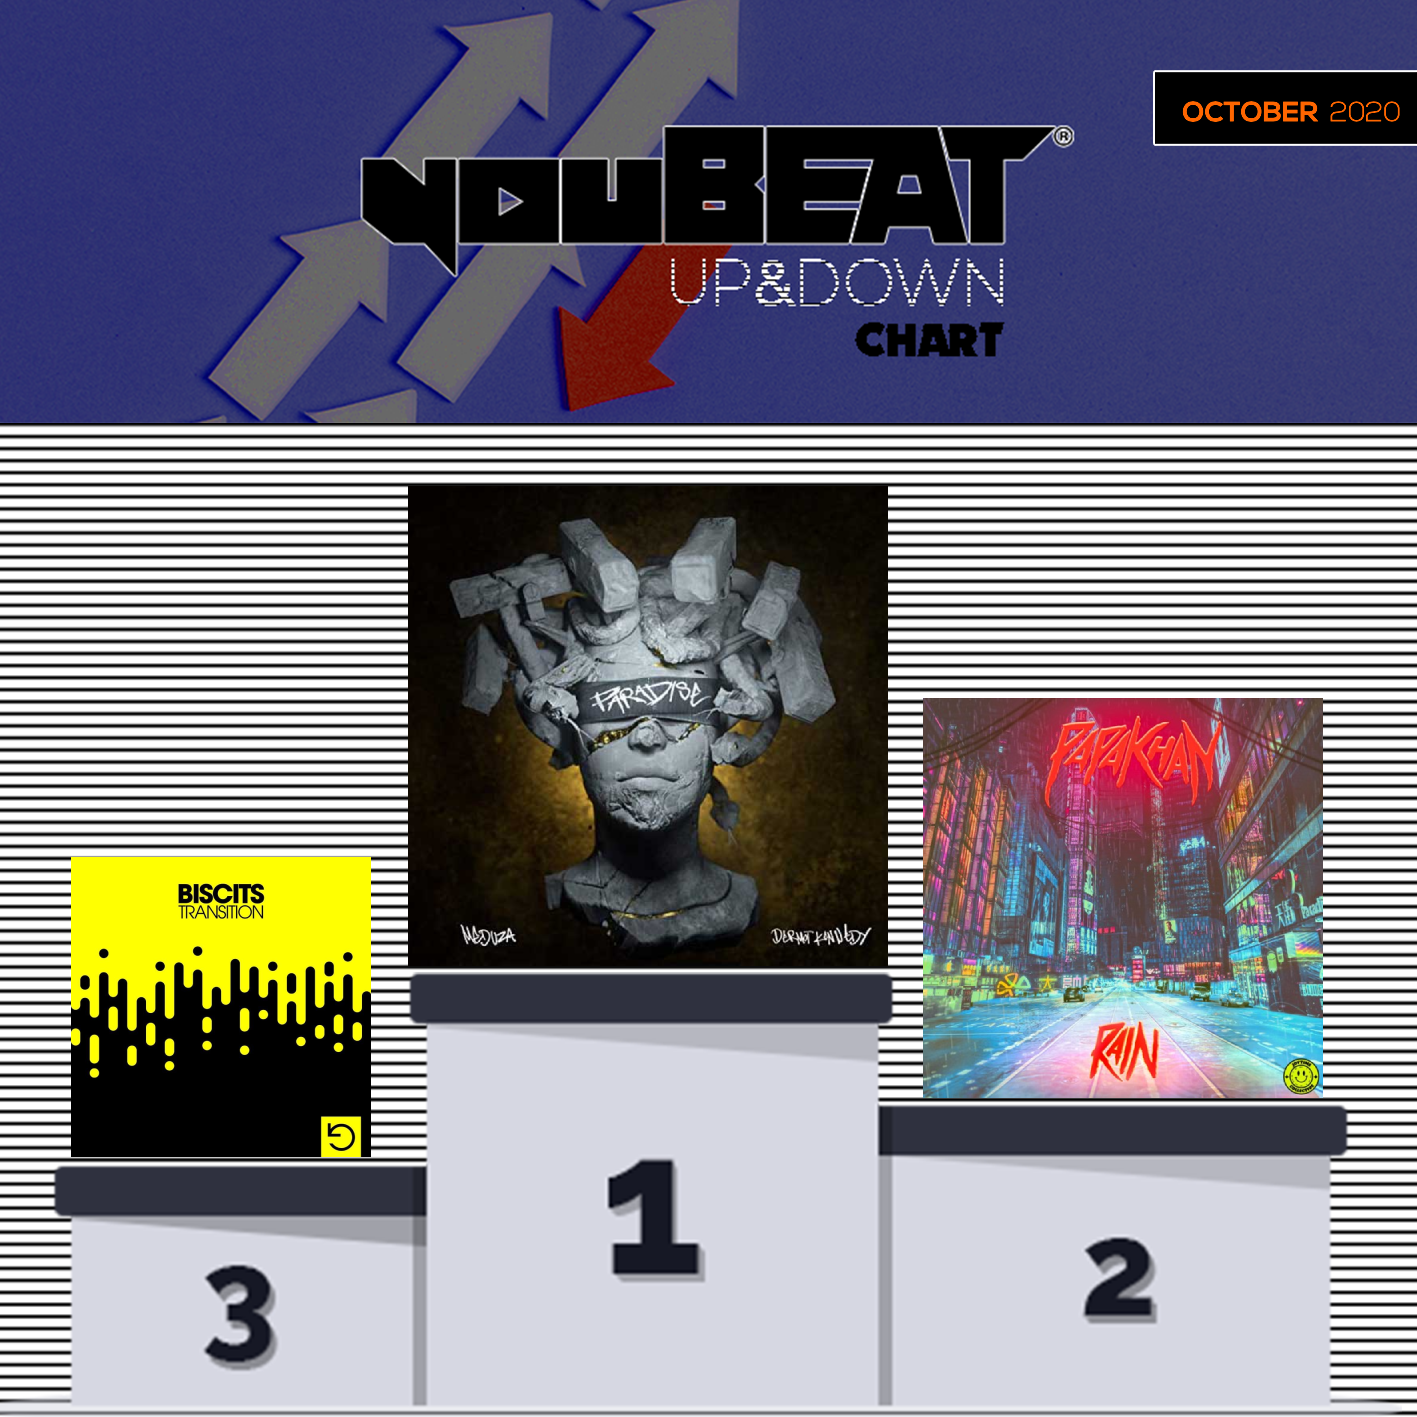 YouBeat Up&Down chart Podium - October 2020